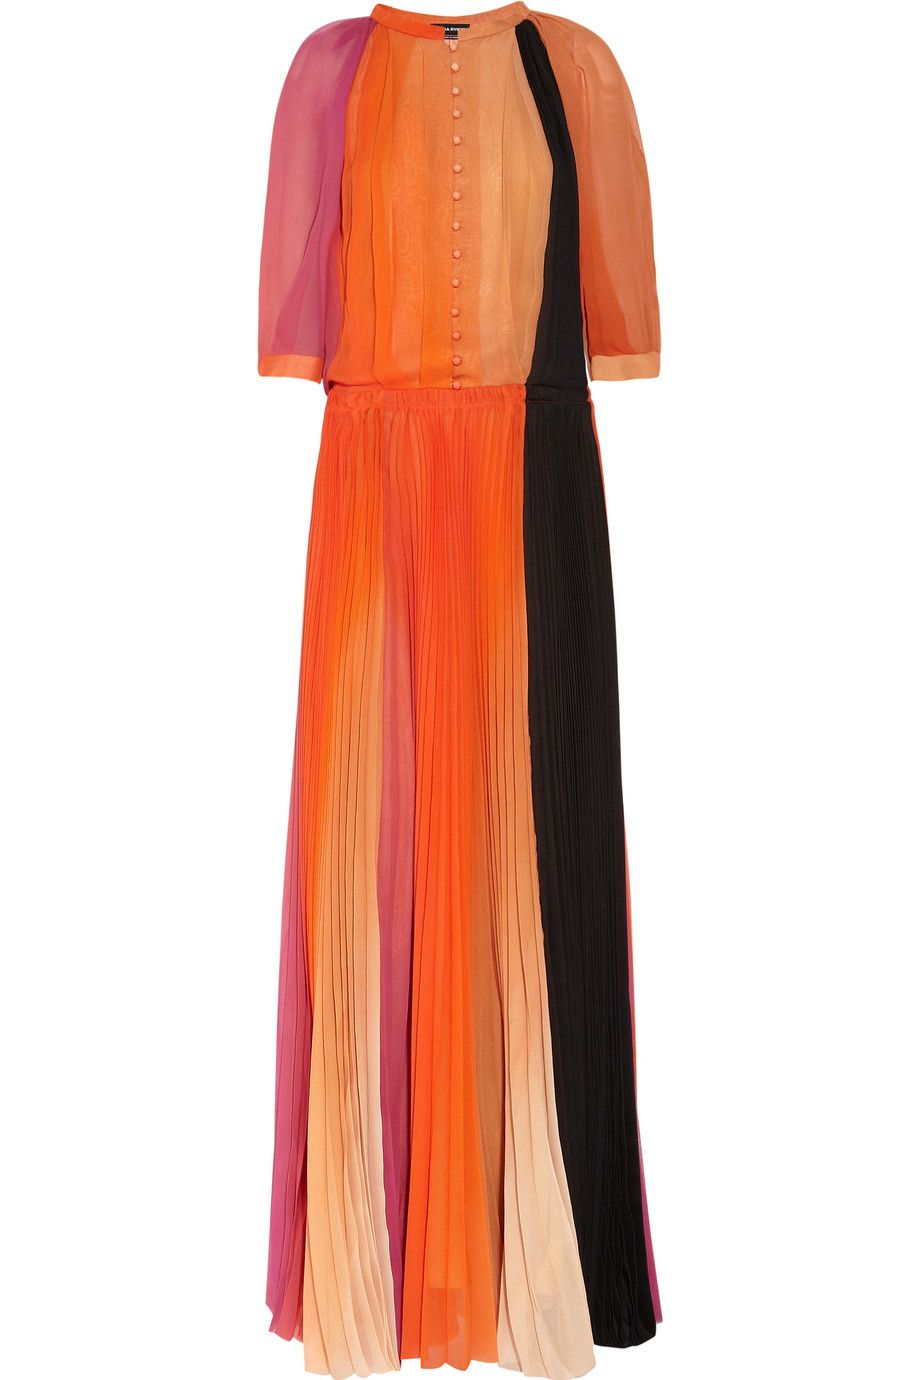 Sonia rykiel pleated silk chiffon gown my sorta style pinterest